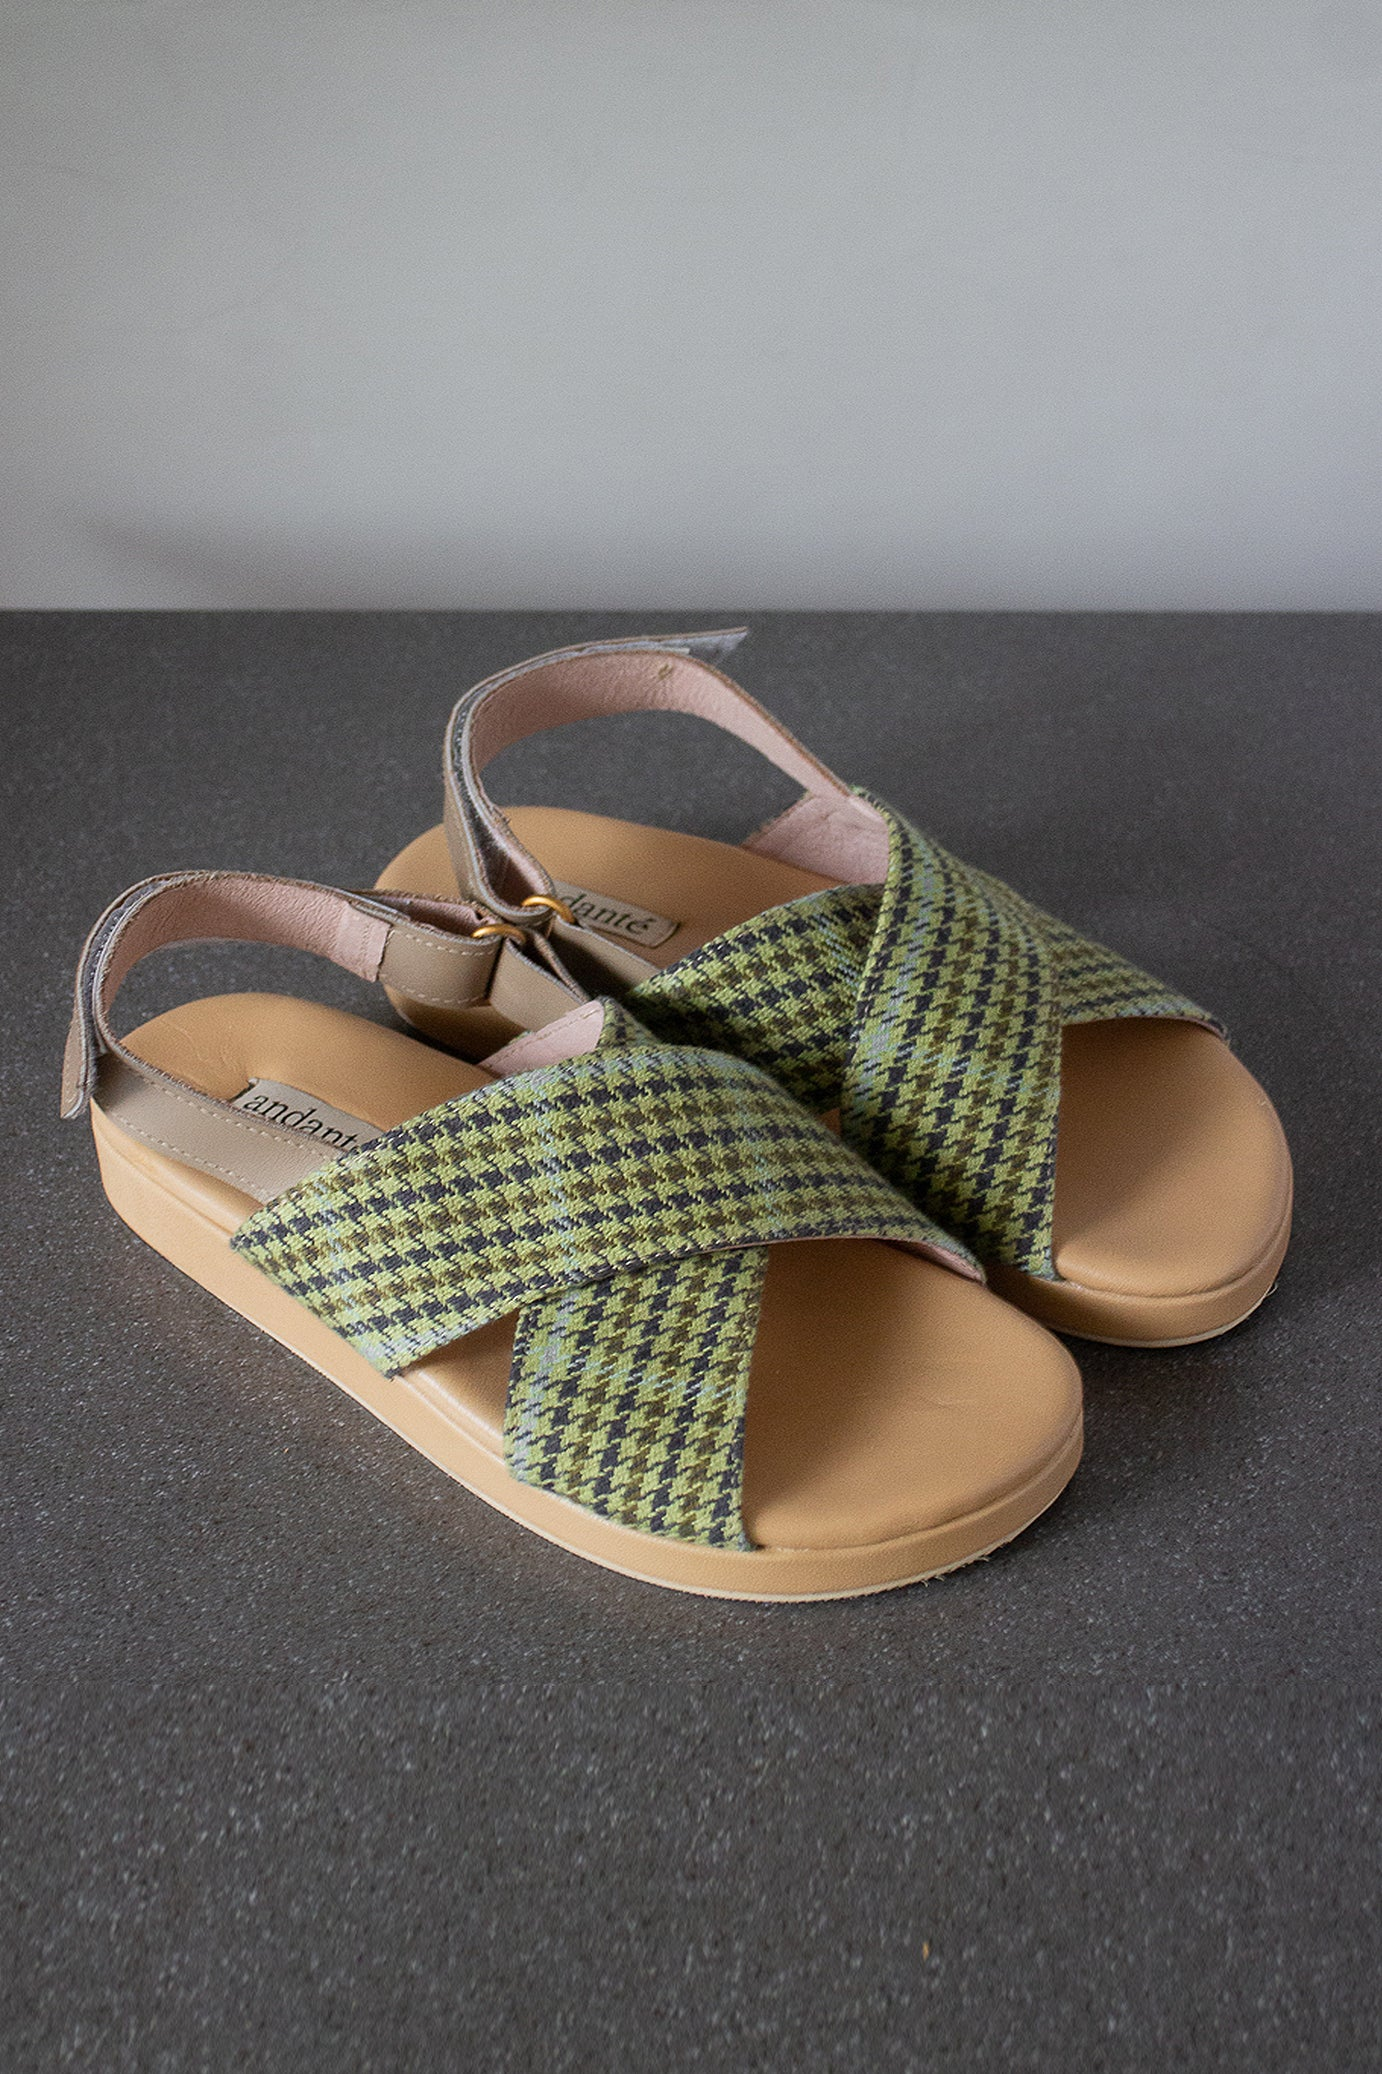 The Cross Sandal in Forest Plaid